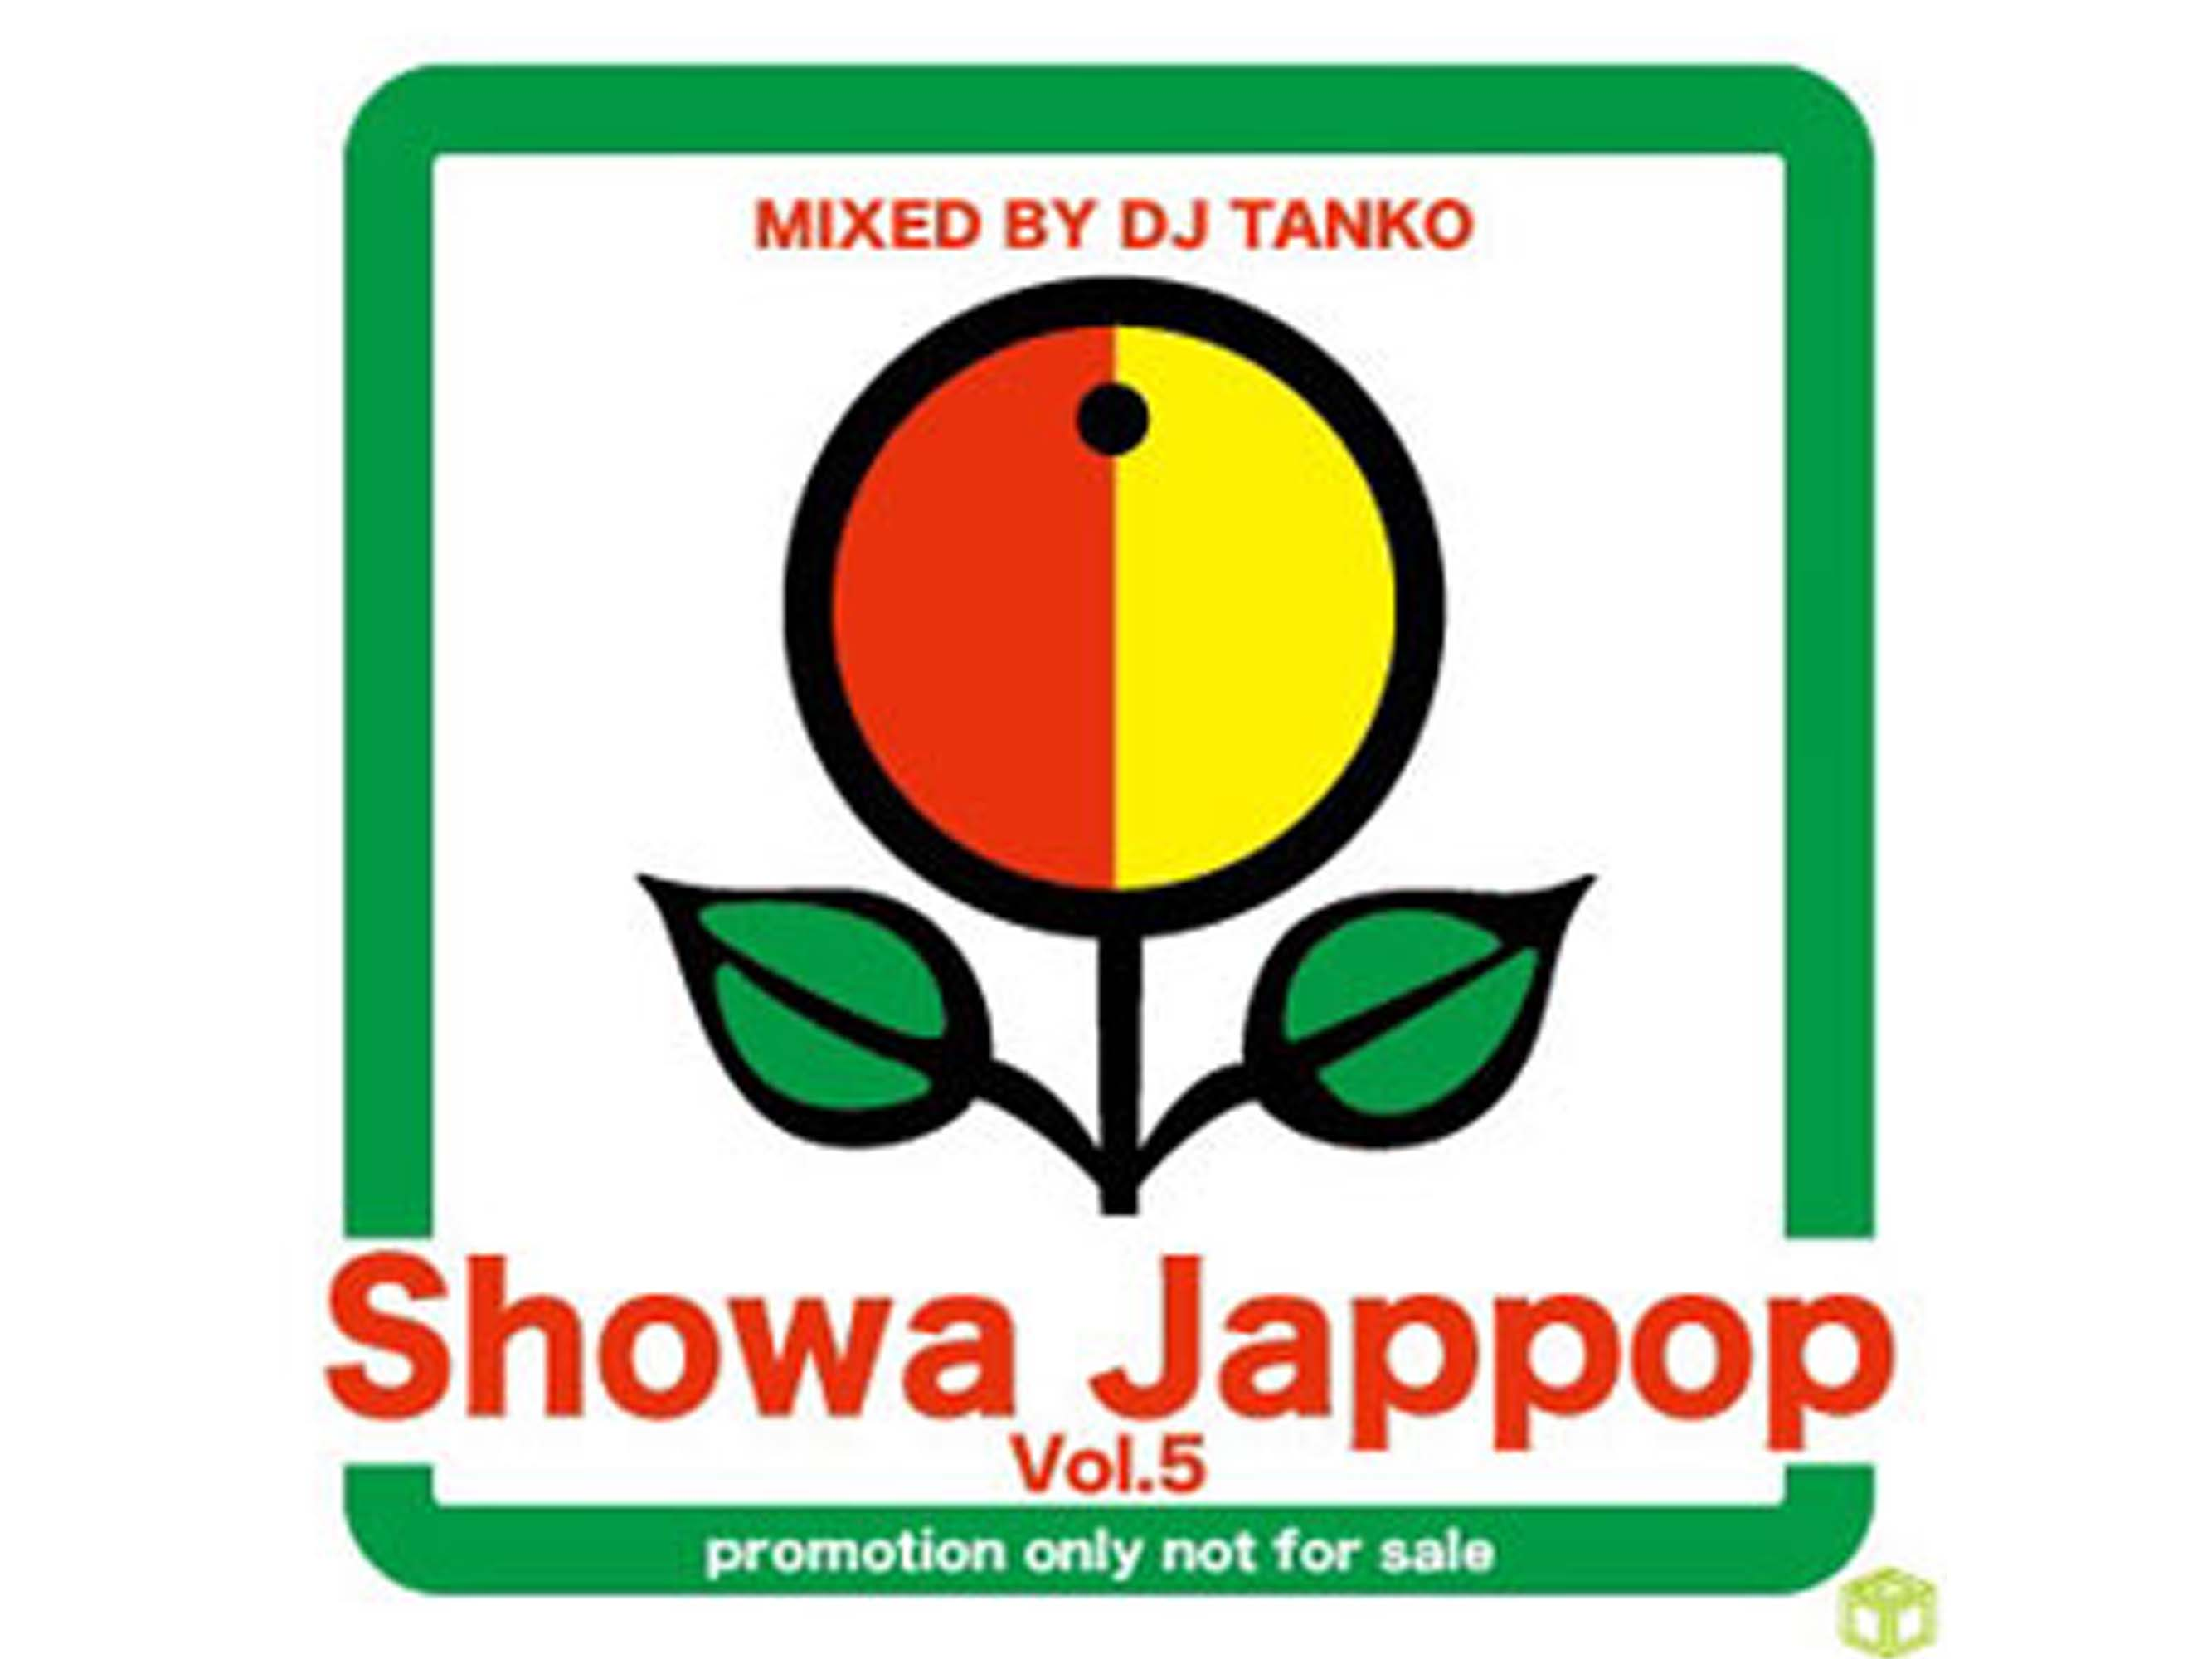 Showa Jappop vol.5 - DJ TANCO